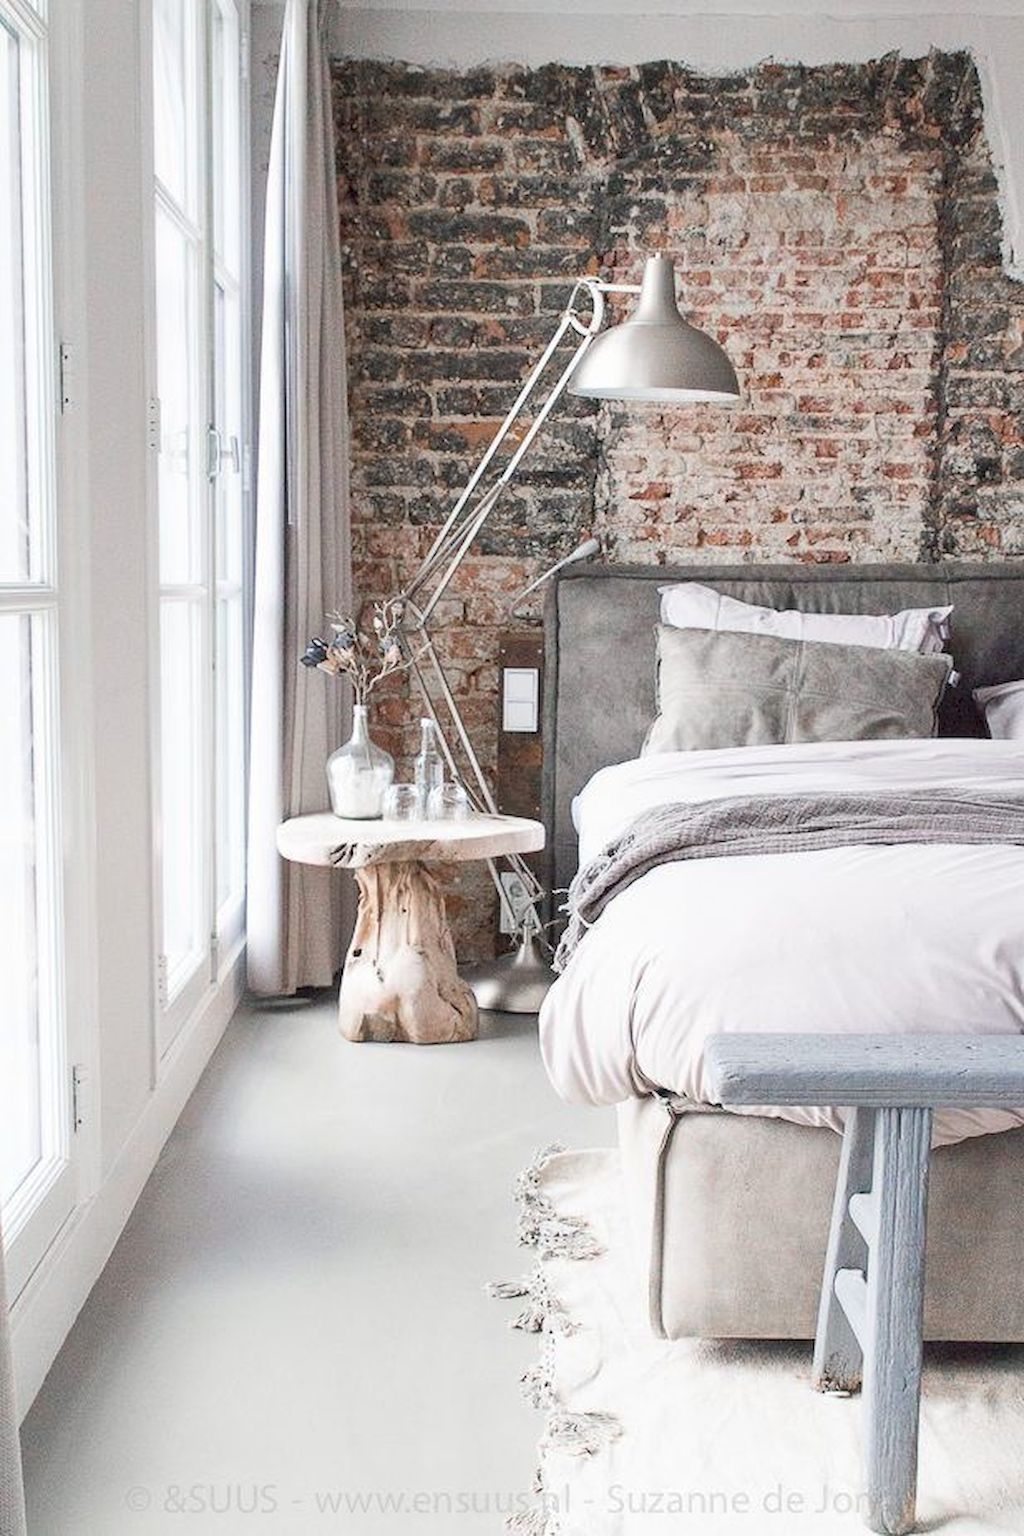 simple apartment bedroom. 30 Simple Apartment Bedroom Decor Ideas with Industrial Furniture